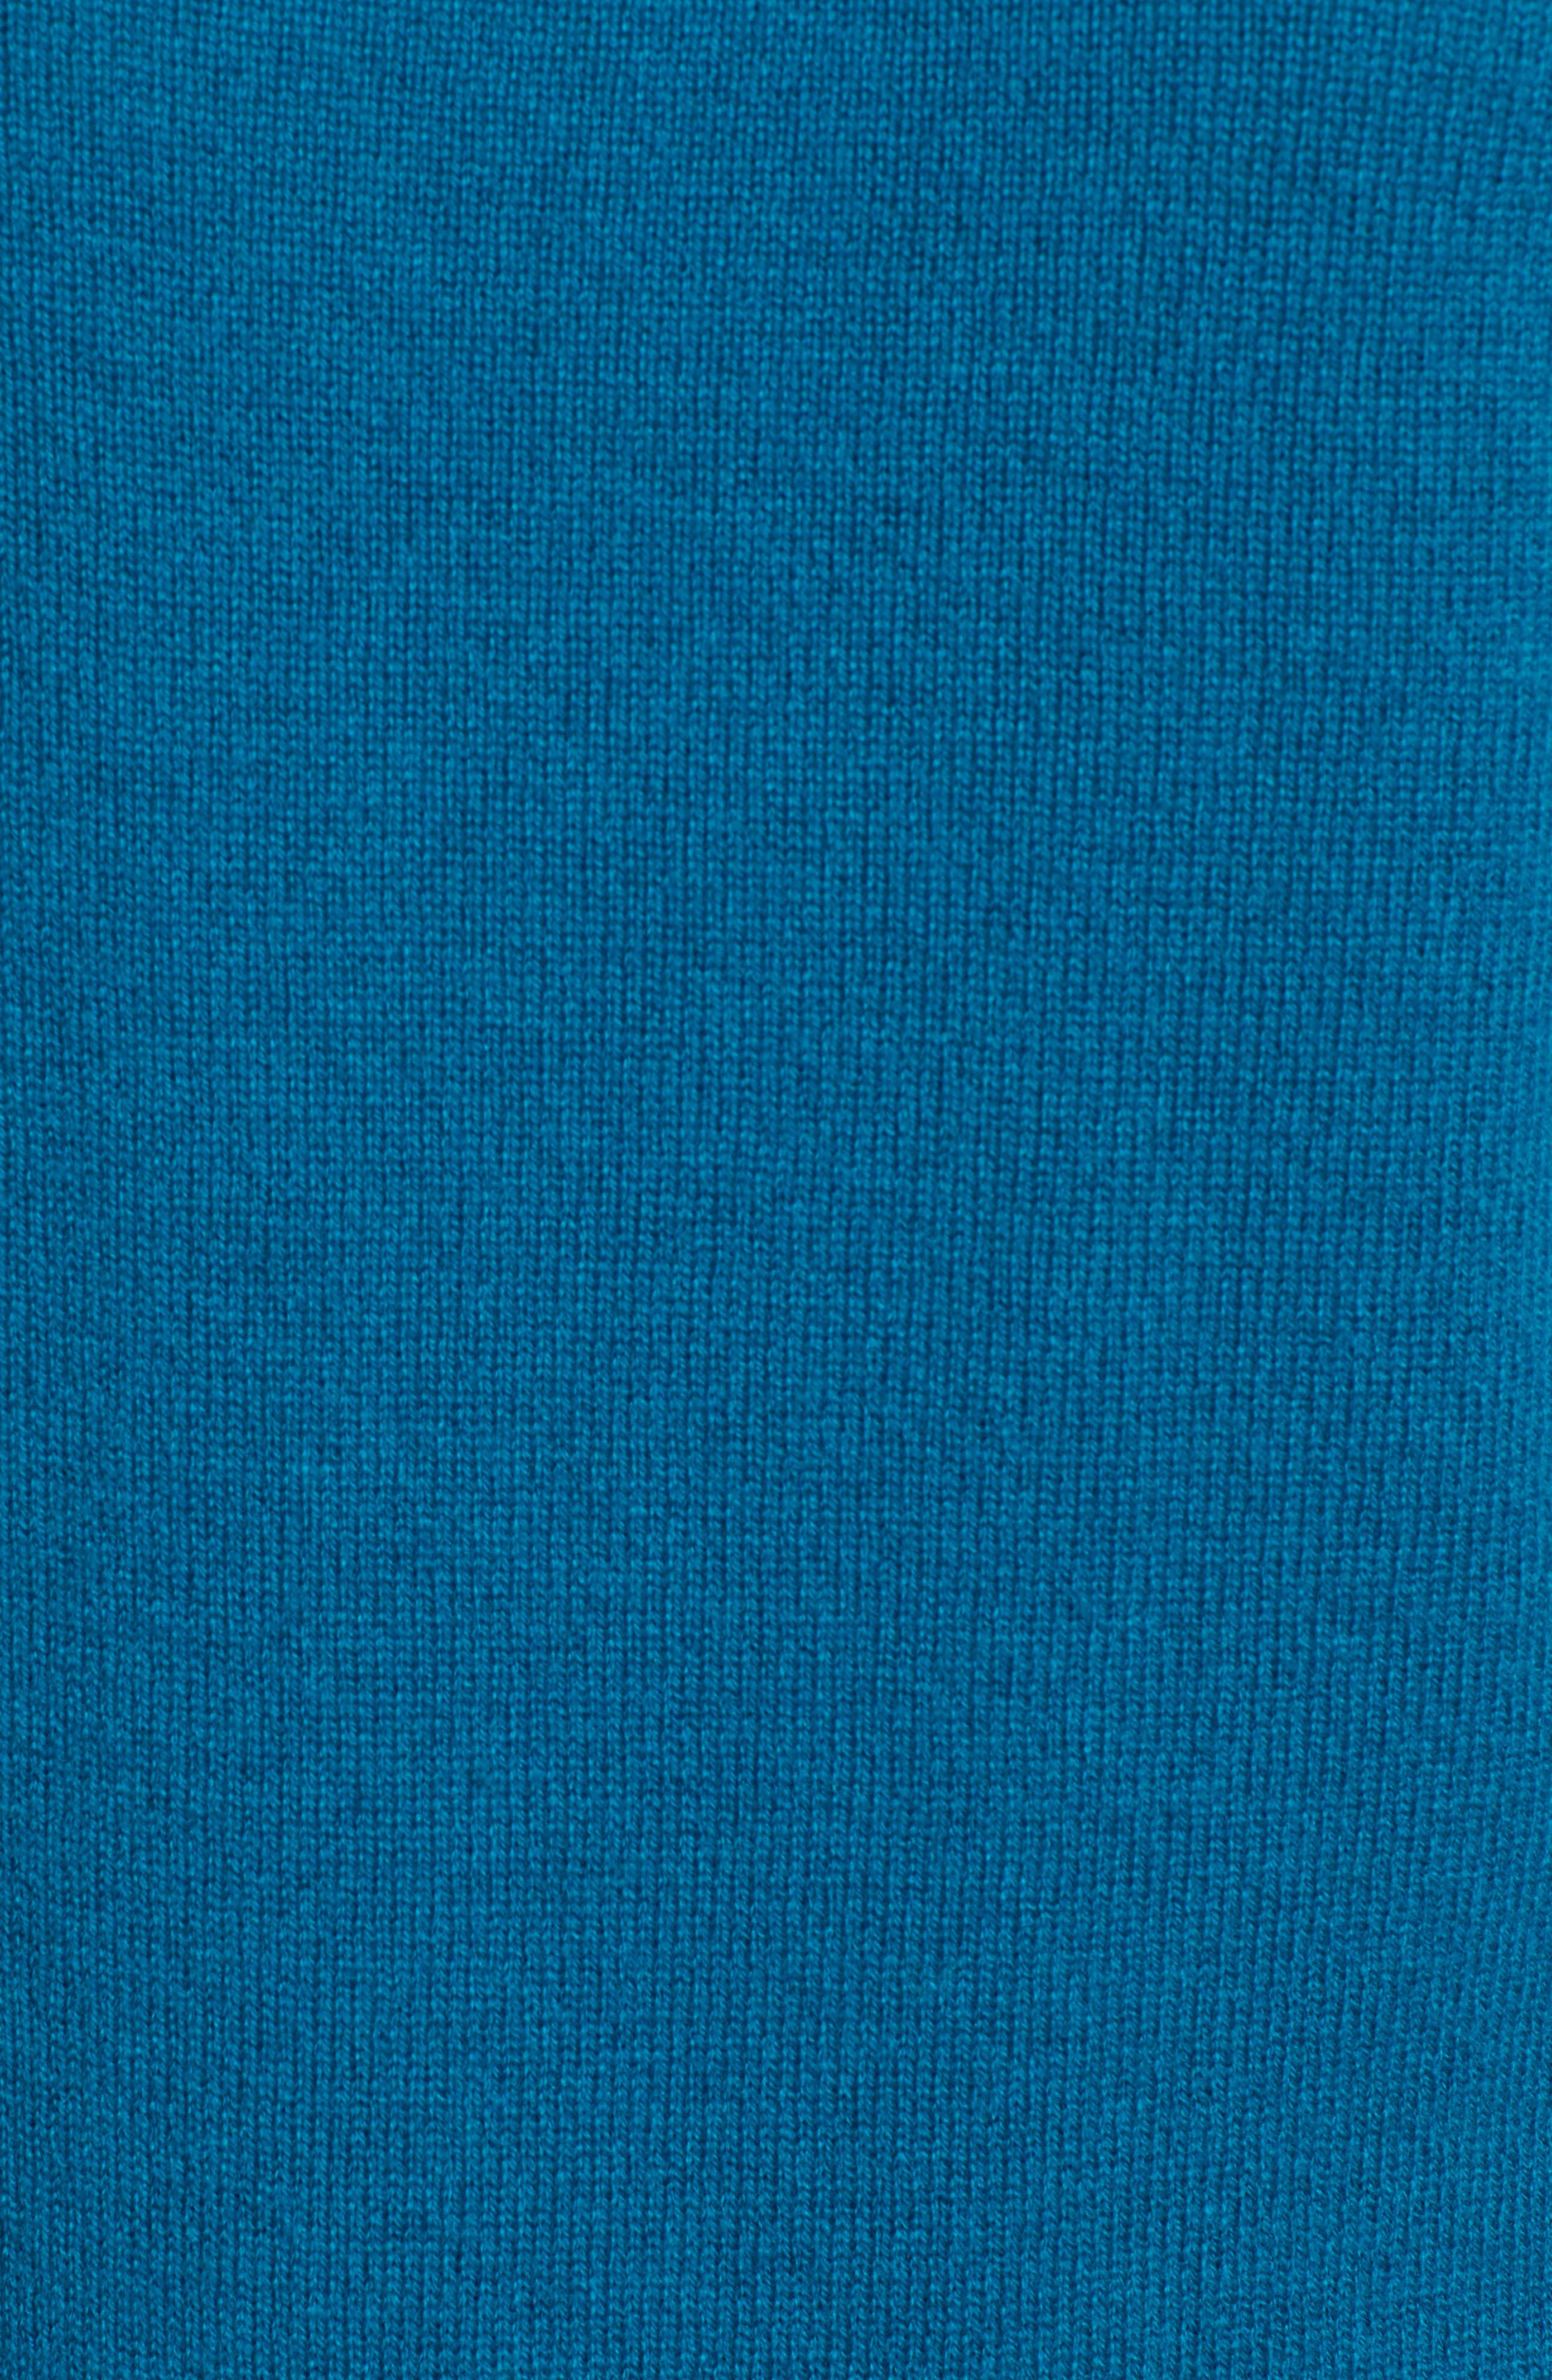 Shirttail Wool & Cashmere Boatneck Tunic,                             Alternate thumbnail 5, color,                             TEAL GLOSS